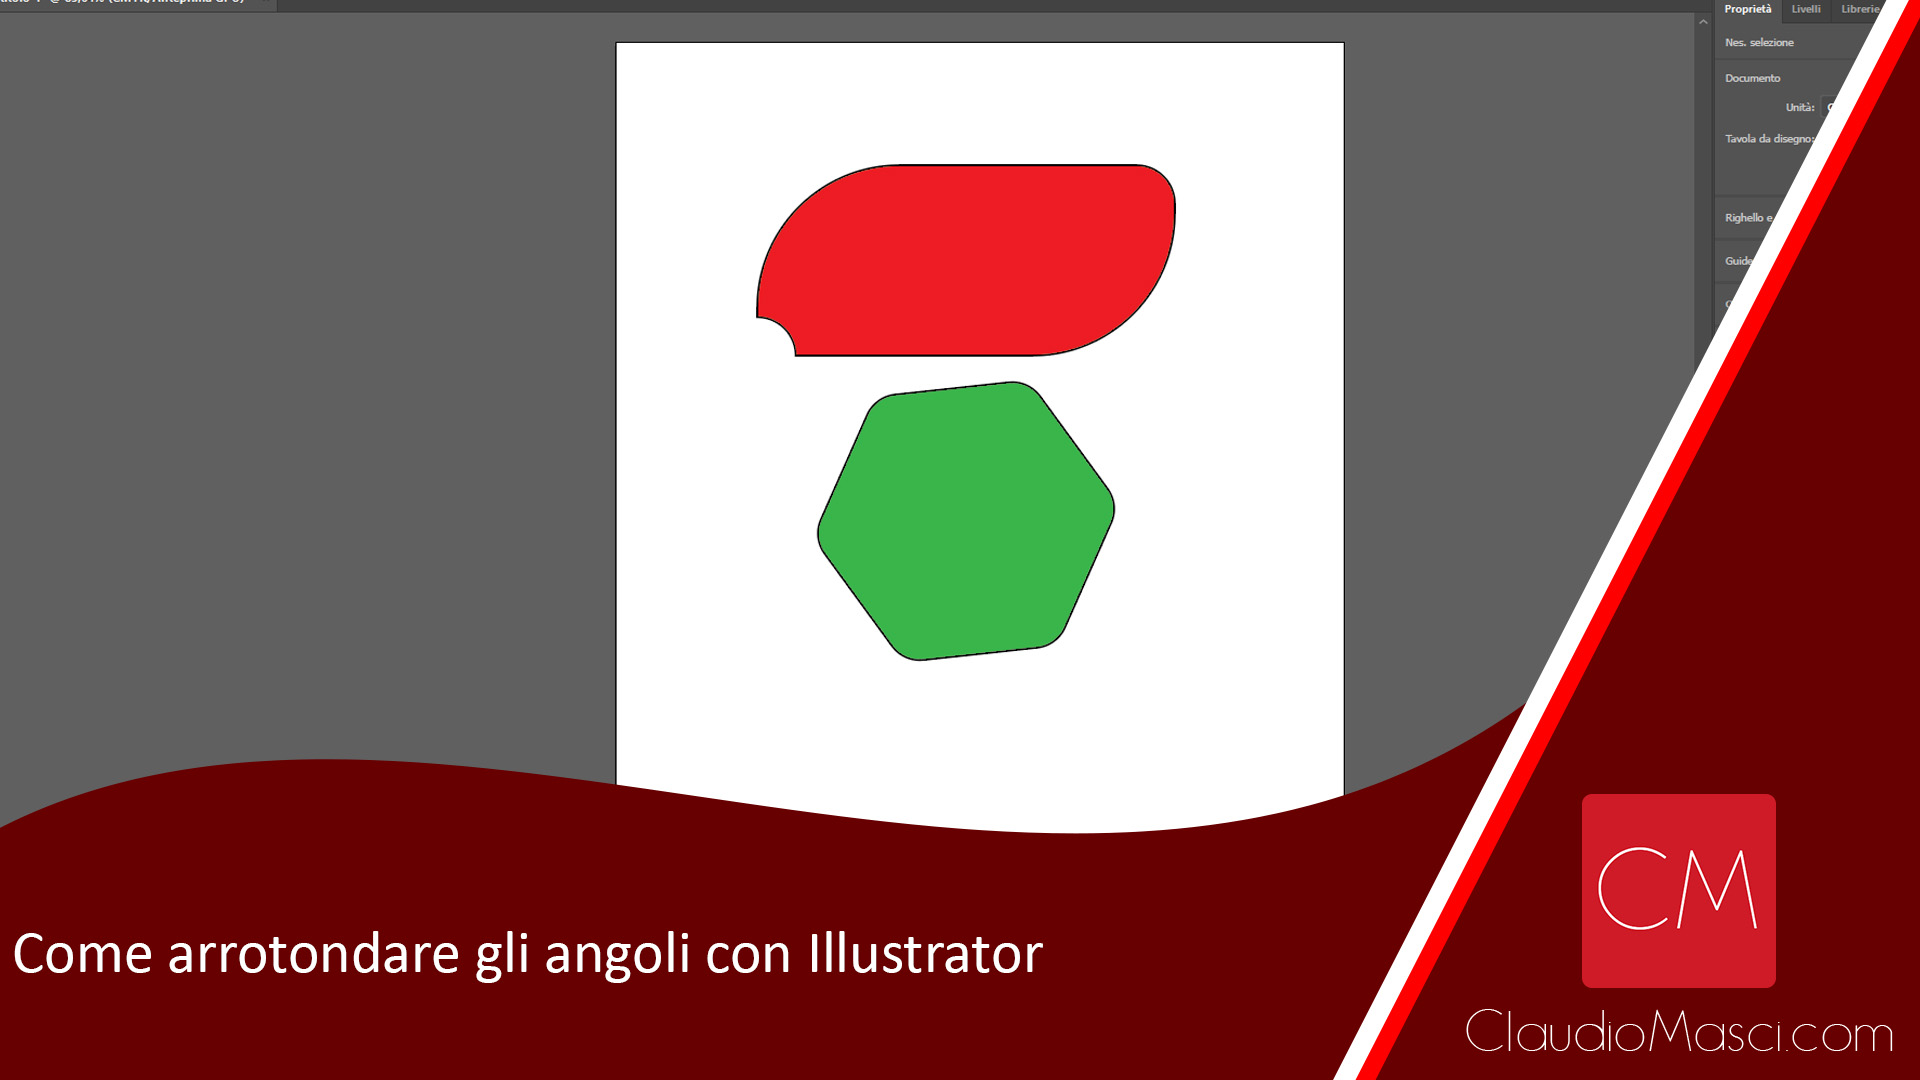 Come arrotondare gli angoli con Illustrator